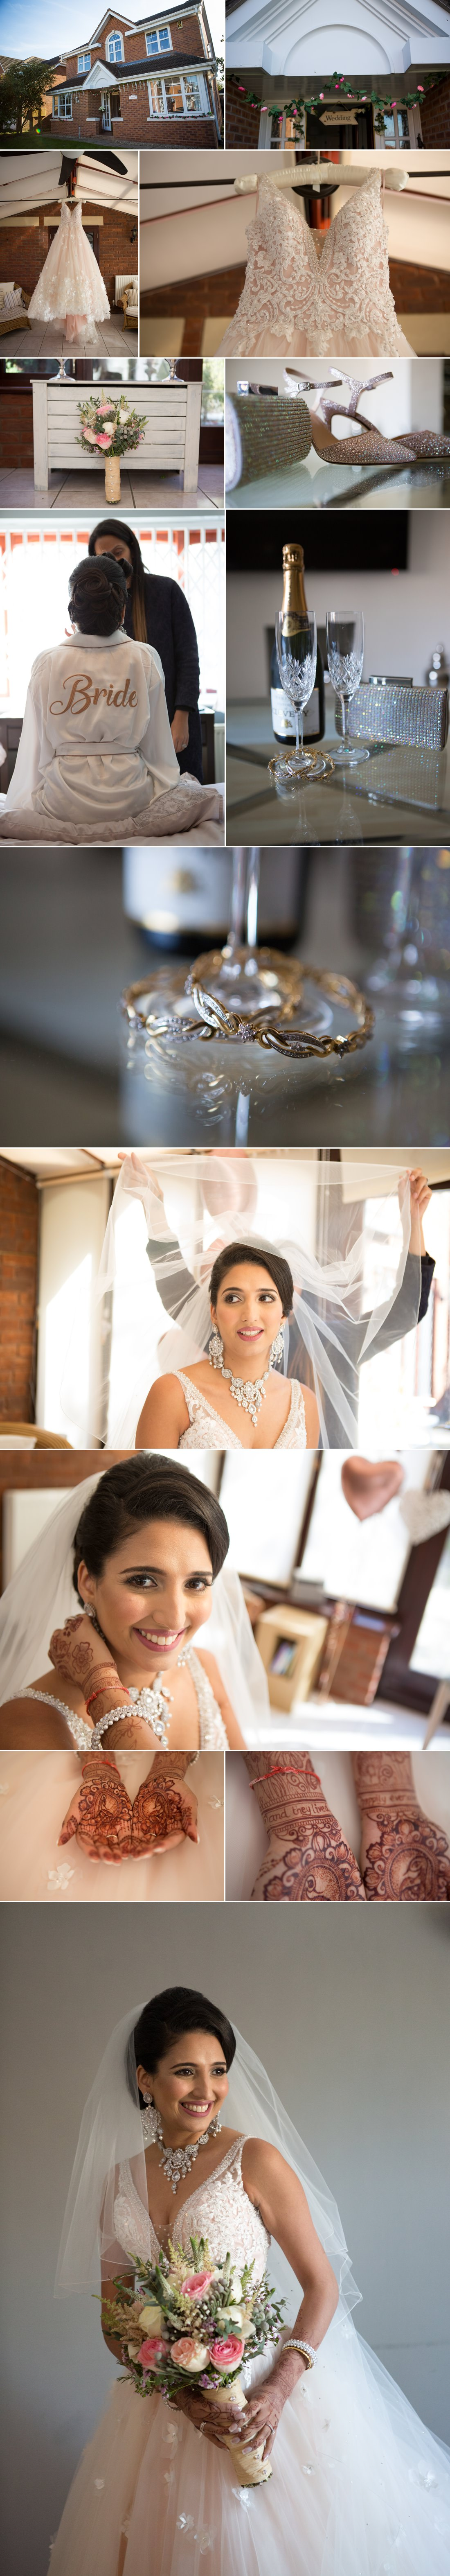 Wedding Photography at Manor Grove Banqueting Suite, Birmingham